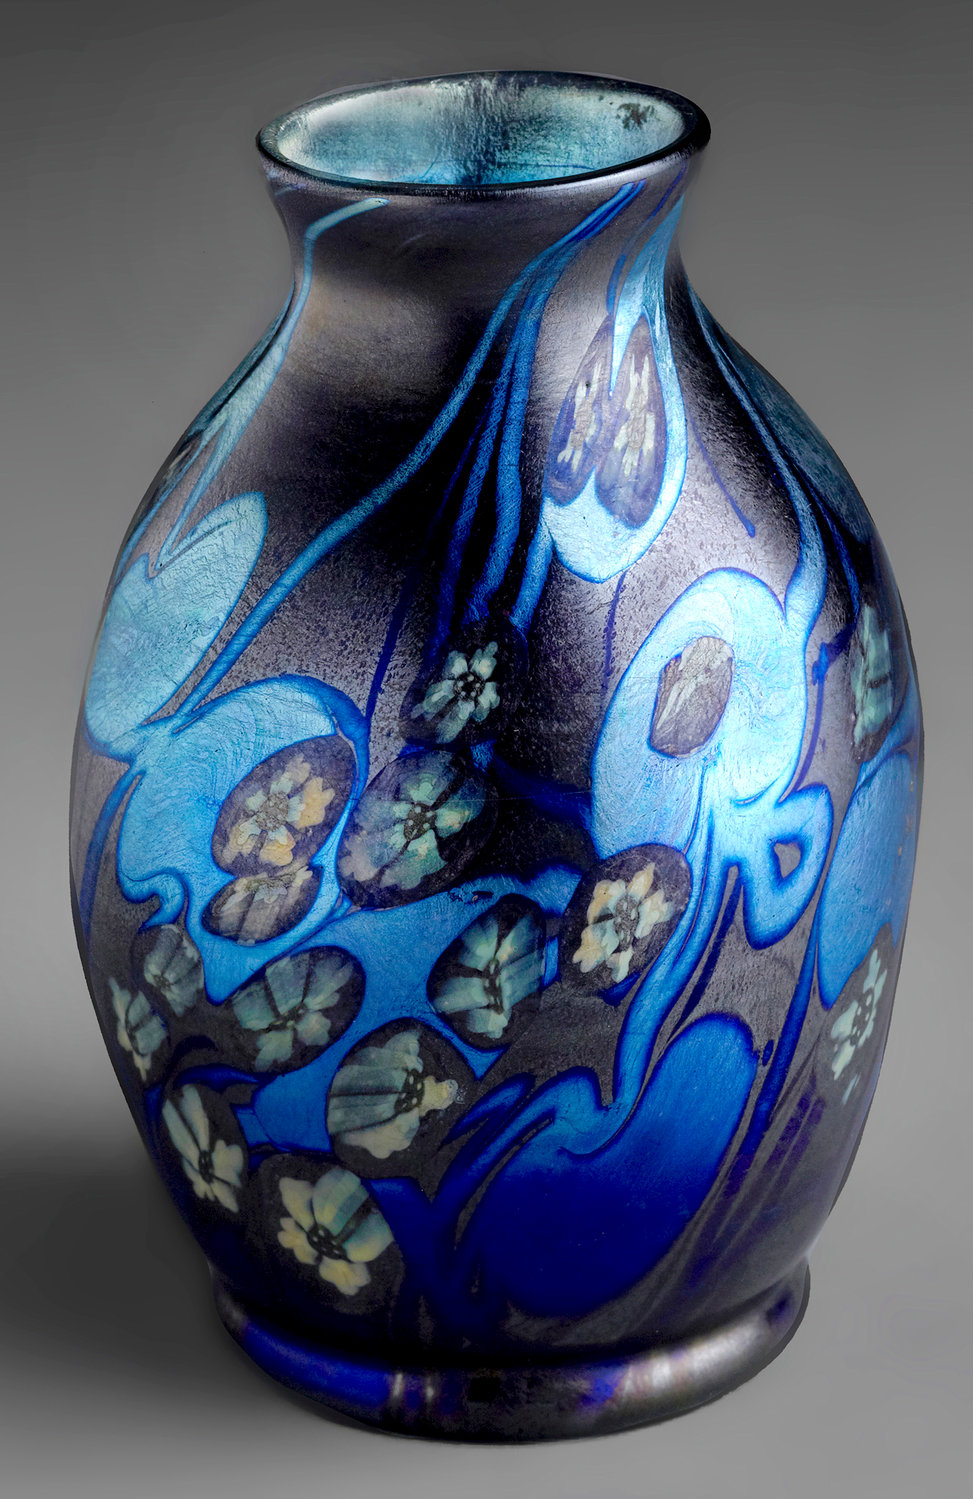 Miniature Vase — c. 1898-1900, blown glass, Tiffany Glass & Decorating Company